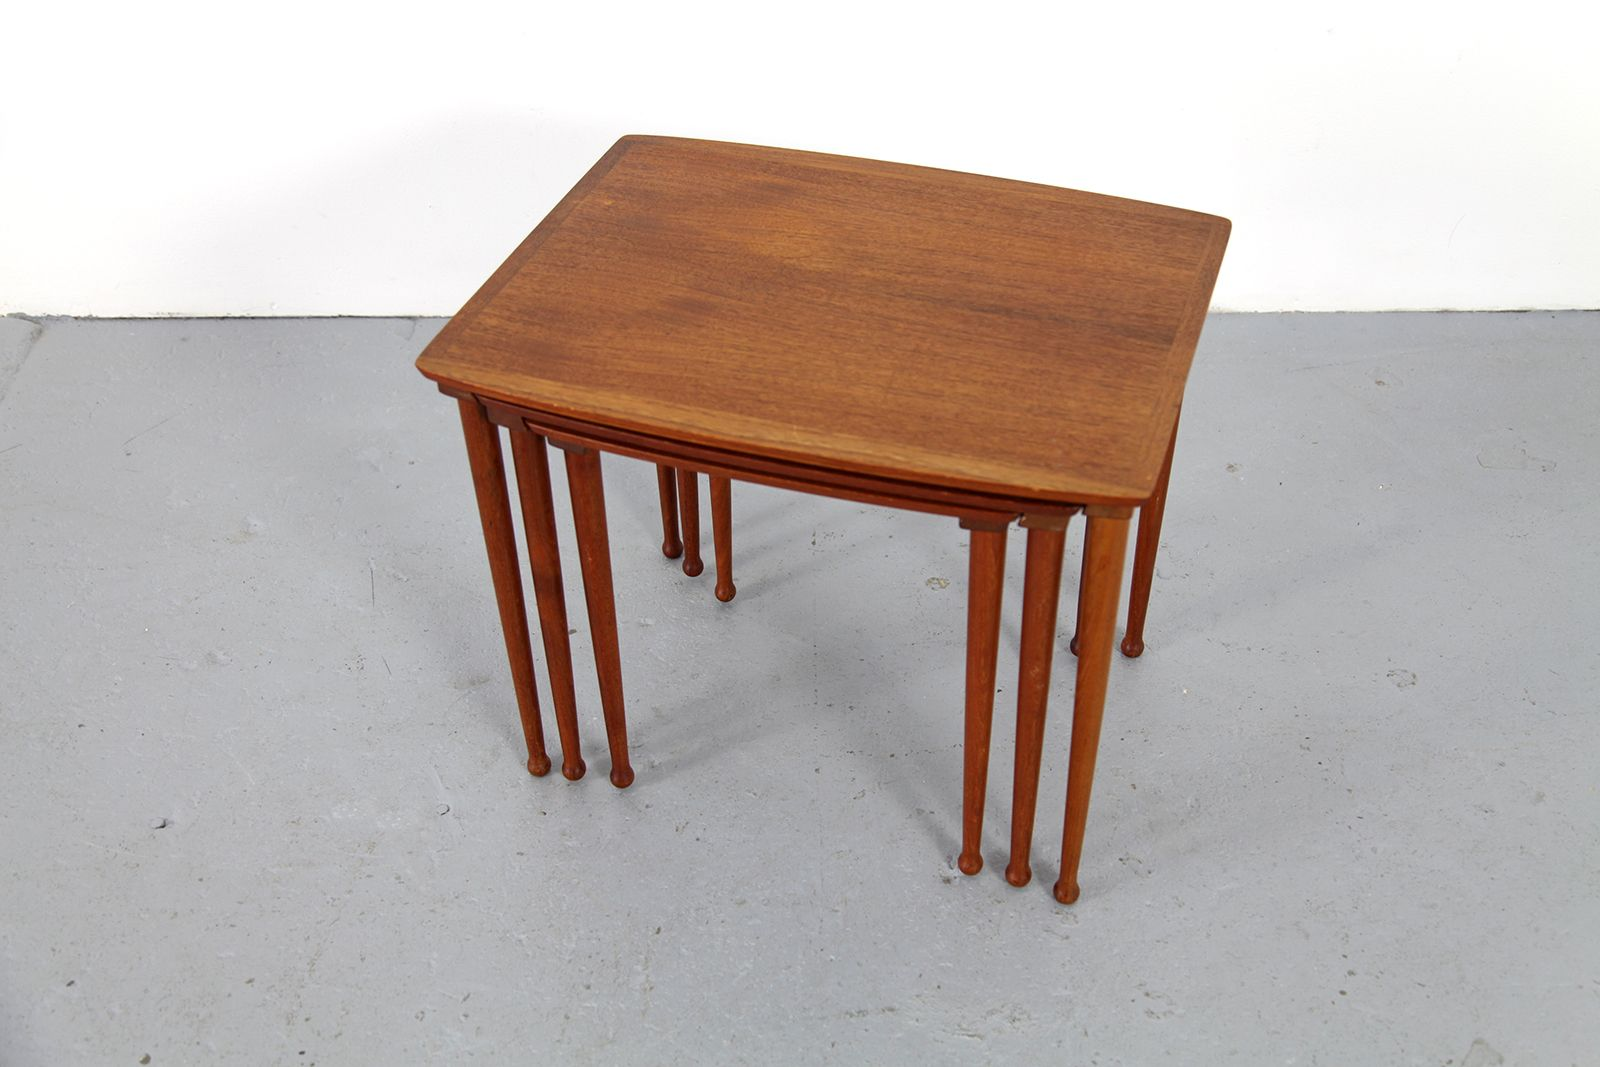 Amazing photo of Vintage Teak Nestling Tables Denmark 1960s Set of 3 13 with #461408 color and 1600x1067 pixels